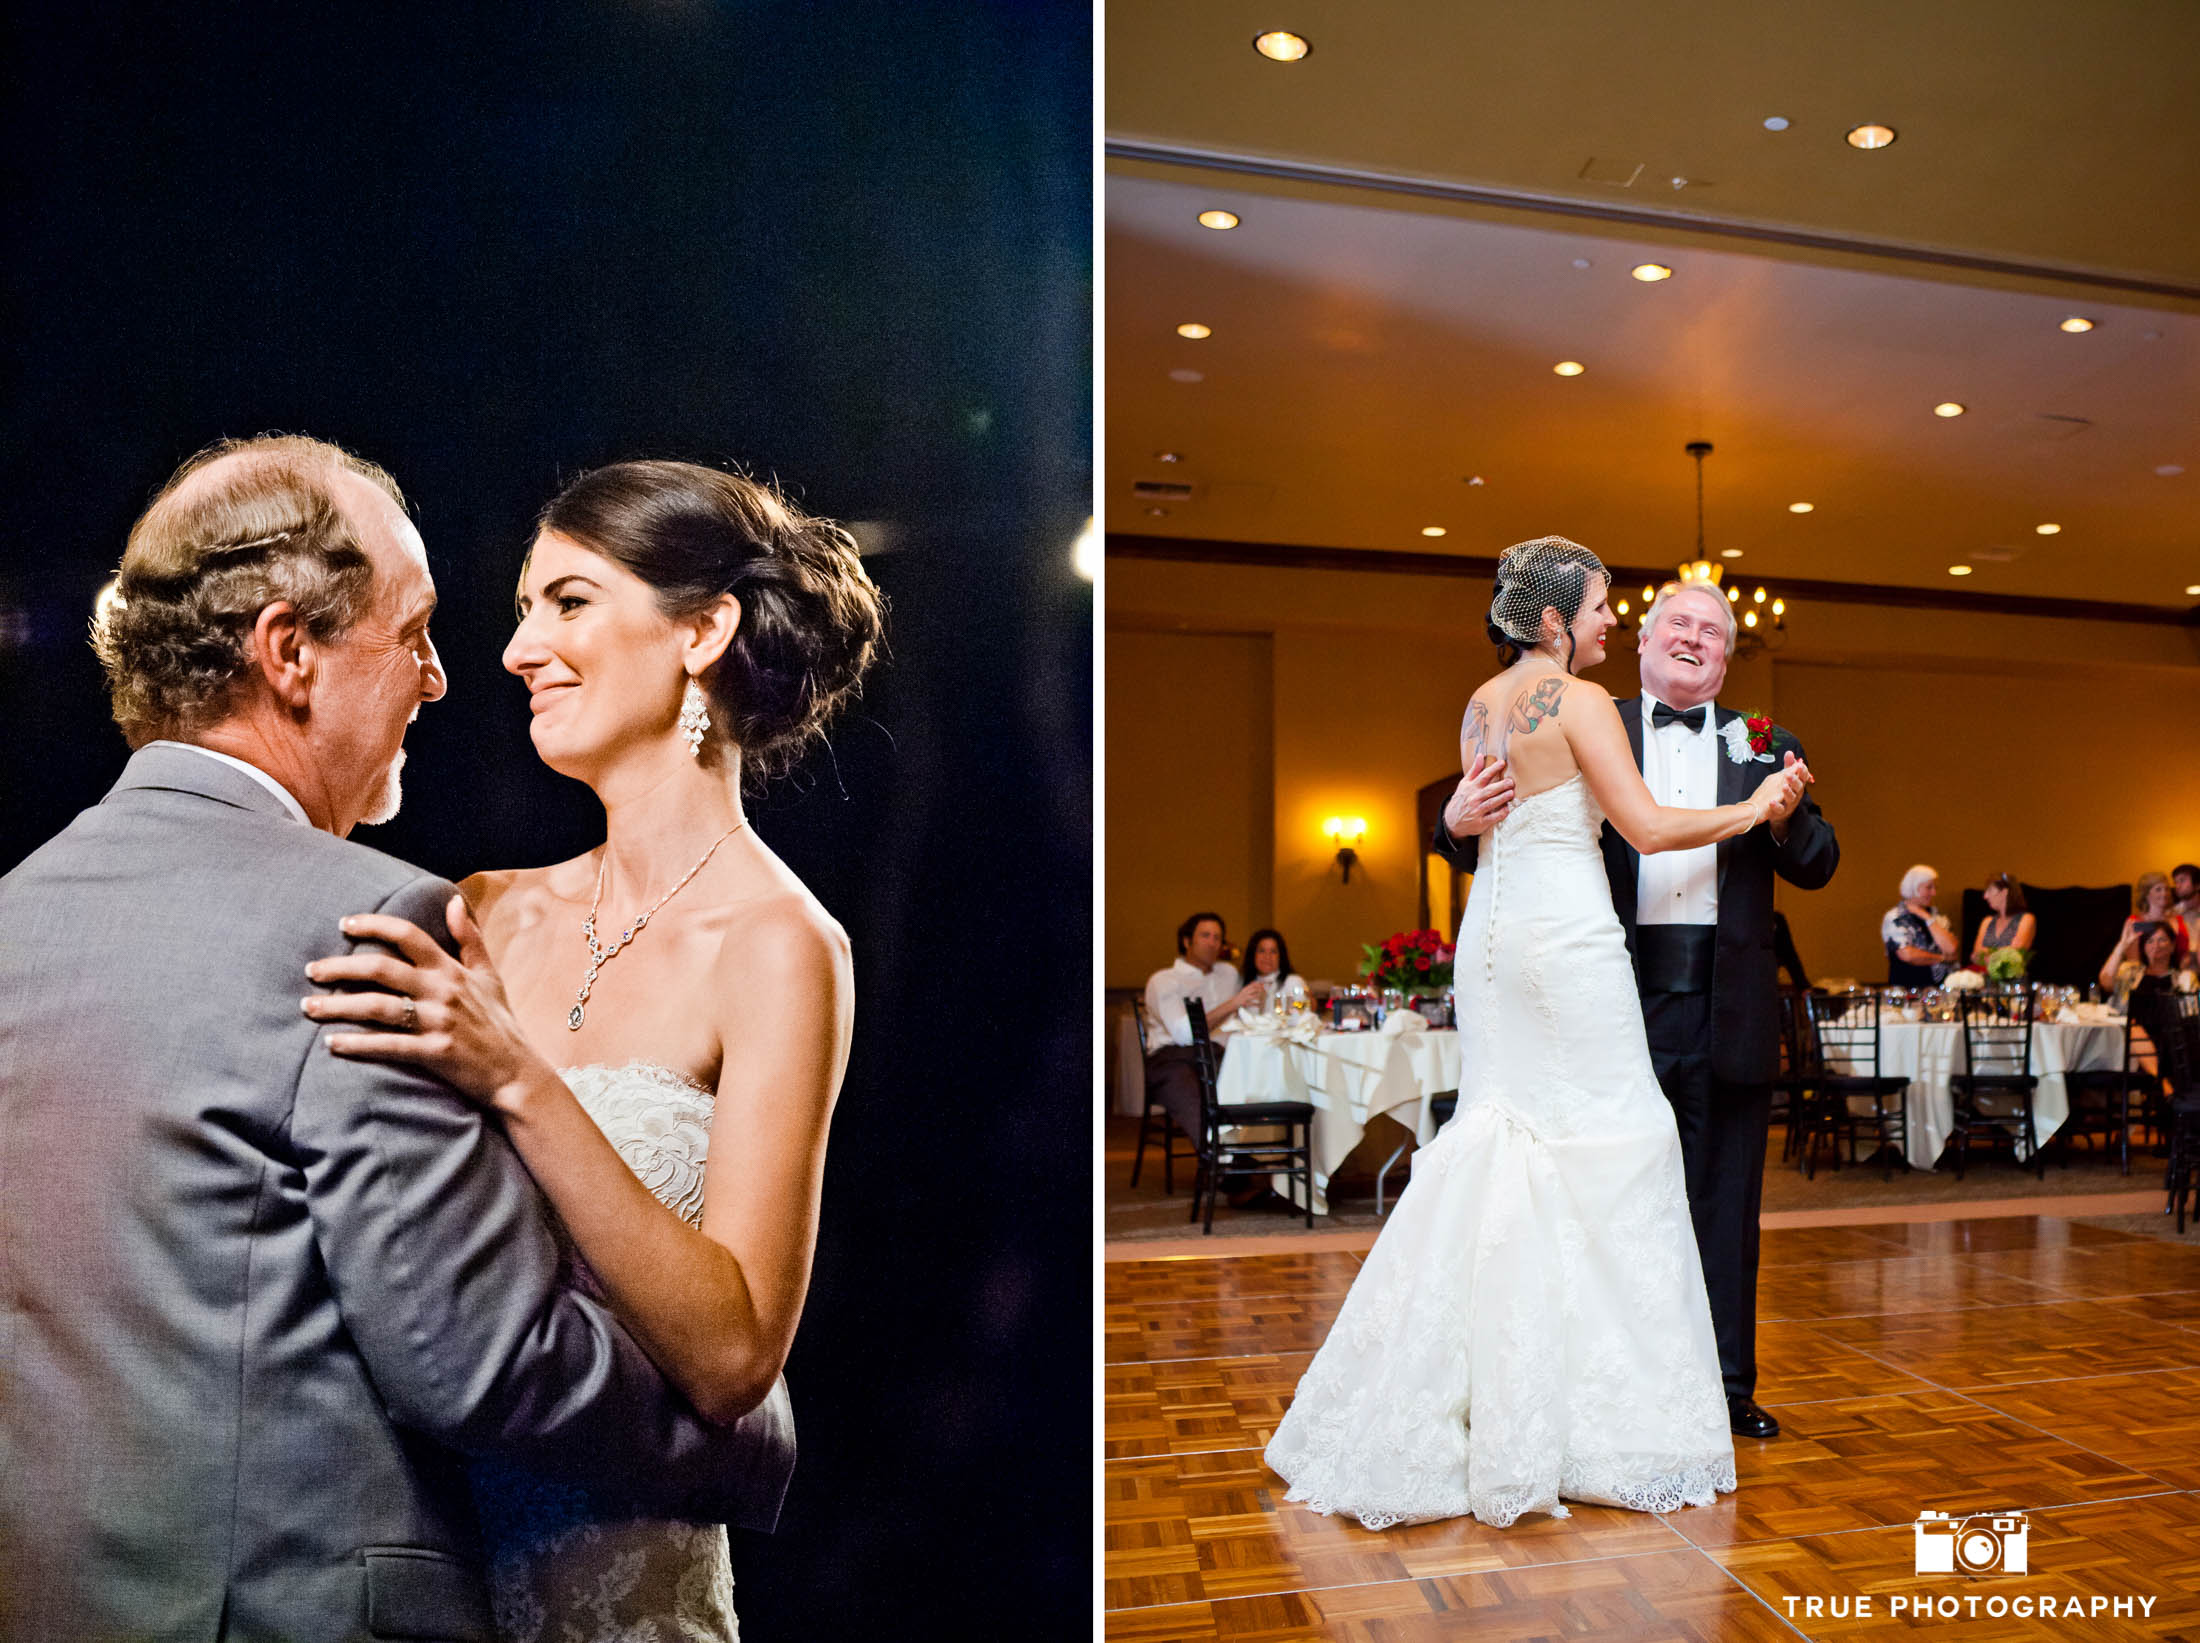 Emotional reactions from Bride and Father during Parent dances at wedding reception